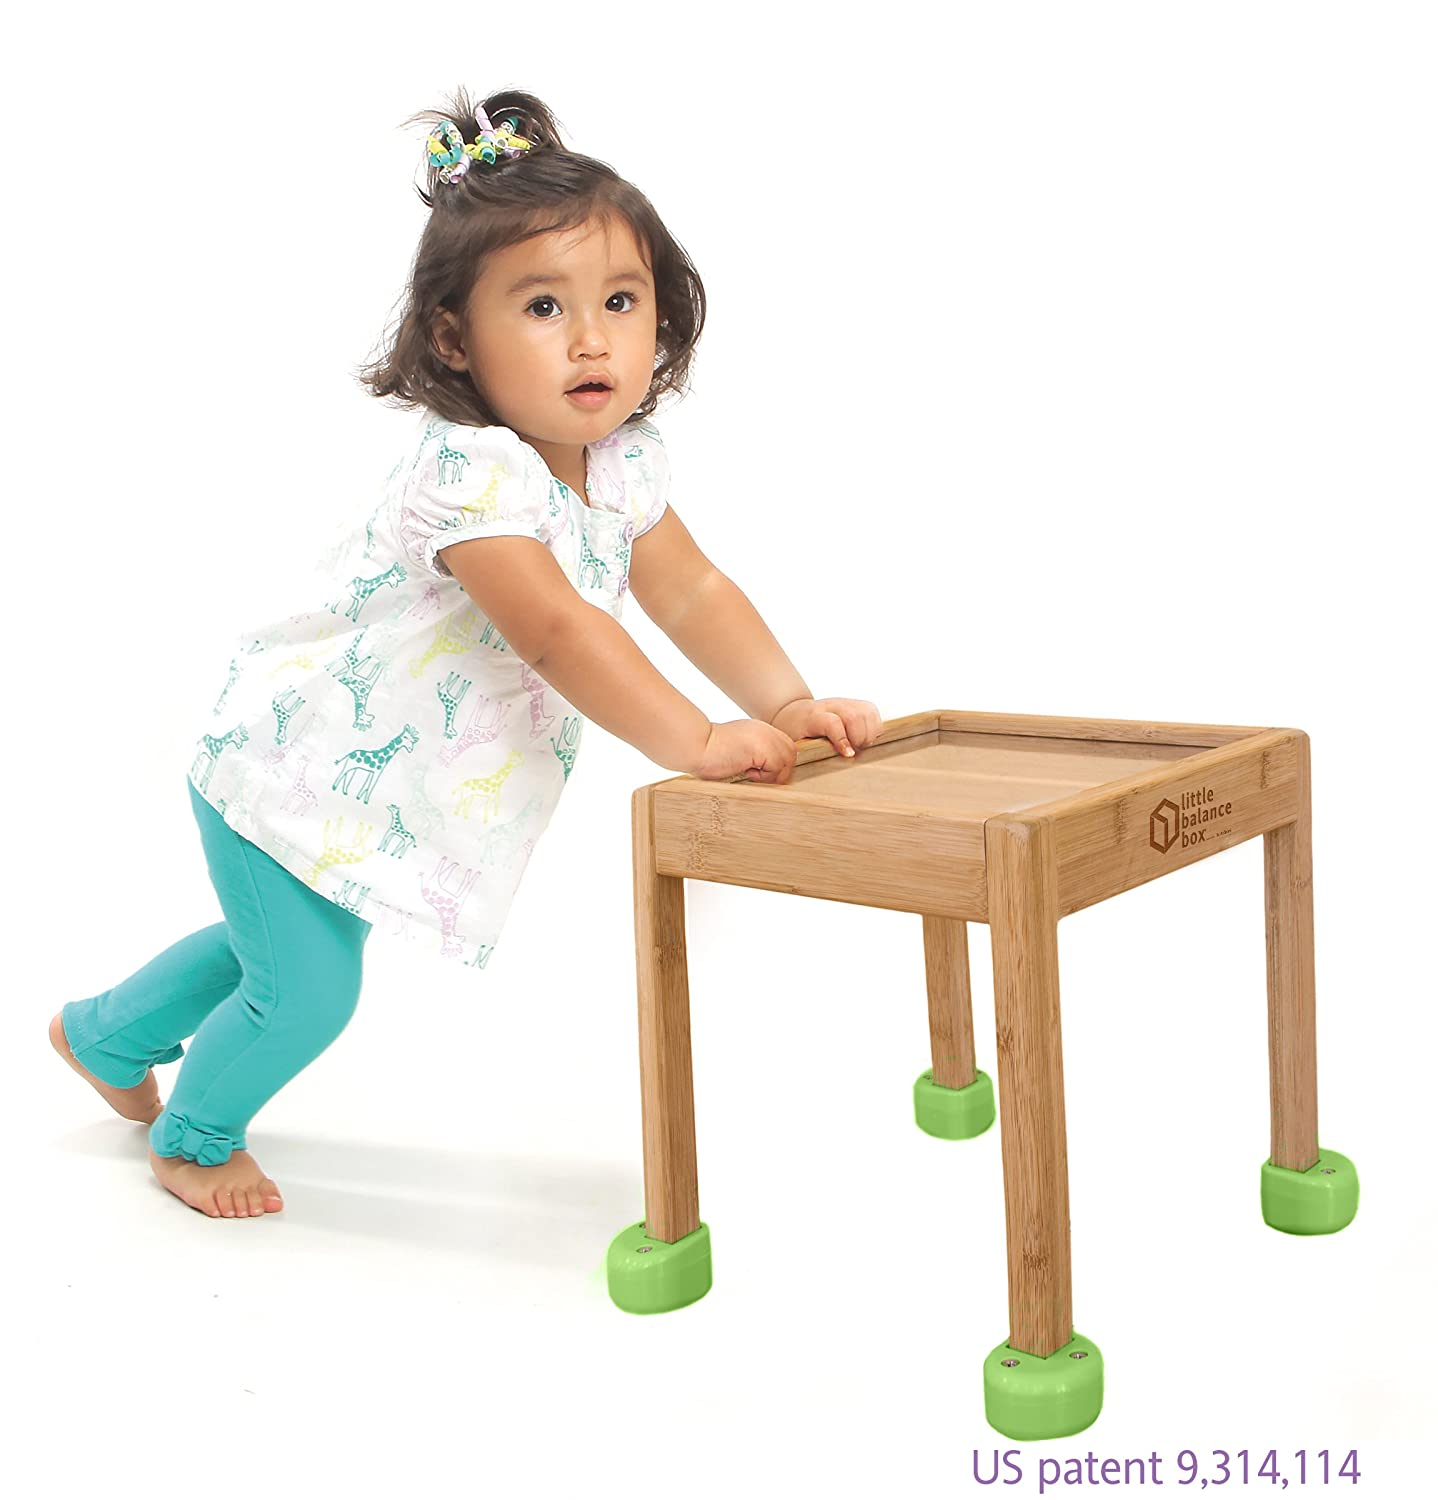 Little Balance Box 2-in-1: No Wheels Spring Feet, Girl Boy Baby Walker Push Stand Toys, Toddler Activity Table, Award Winning (Green)